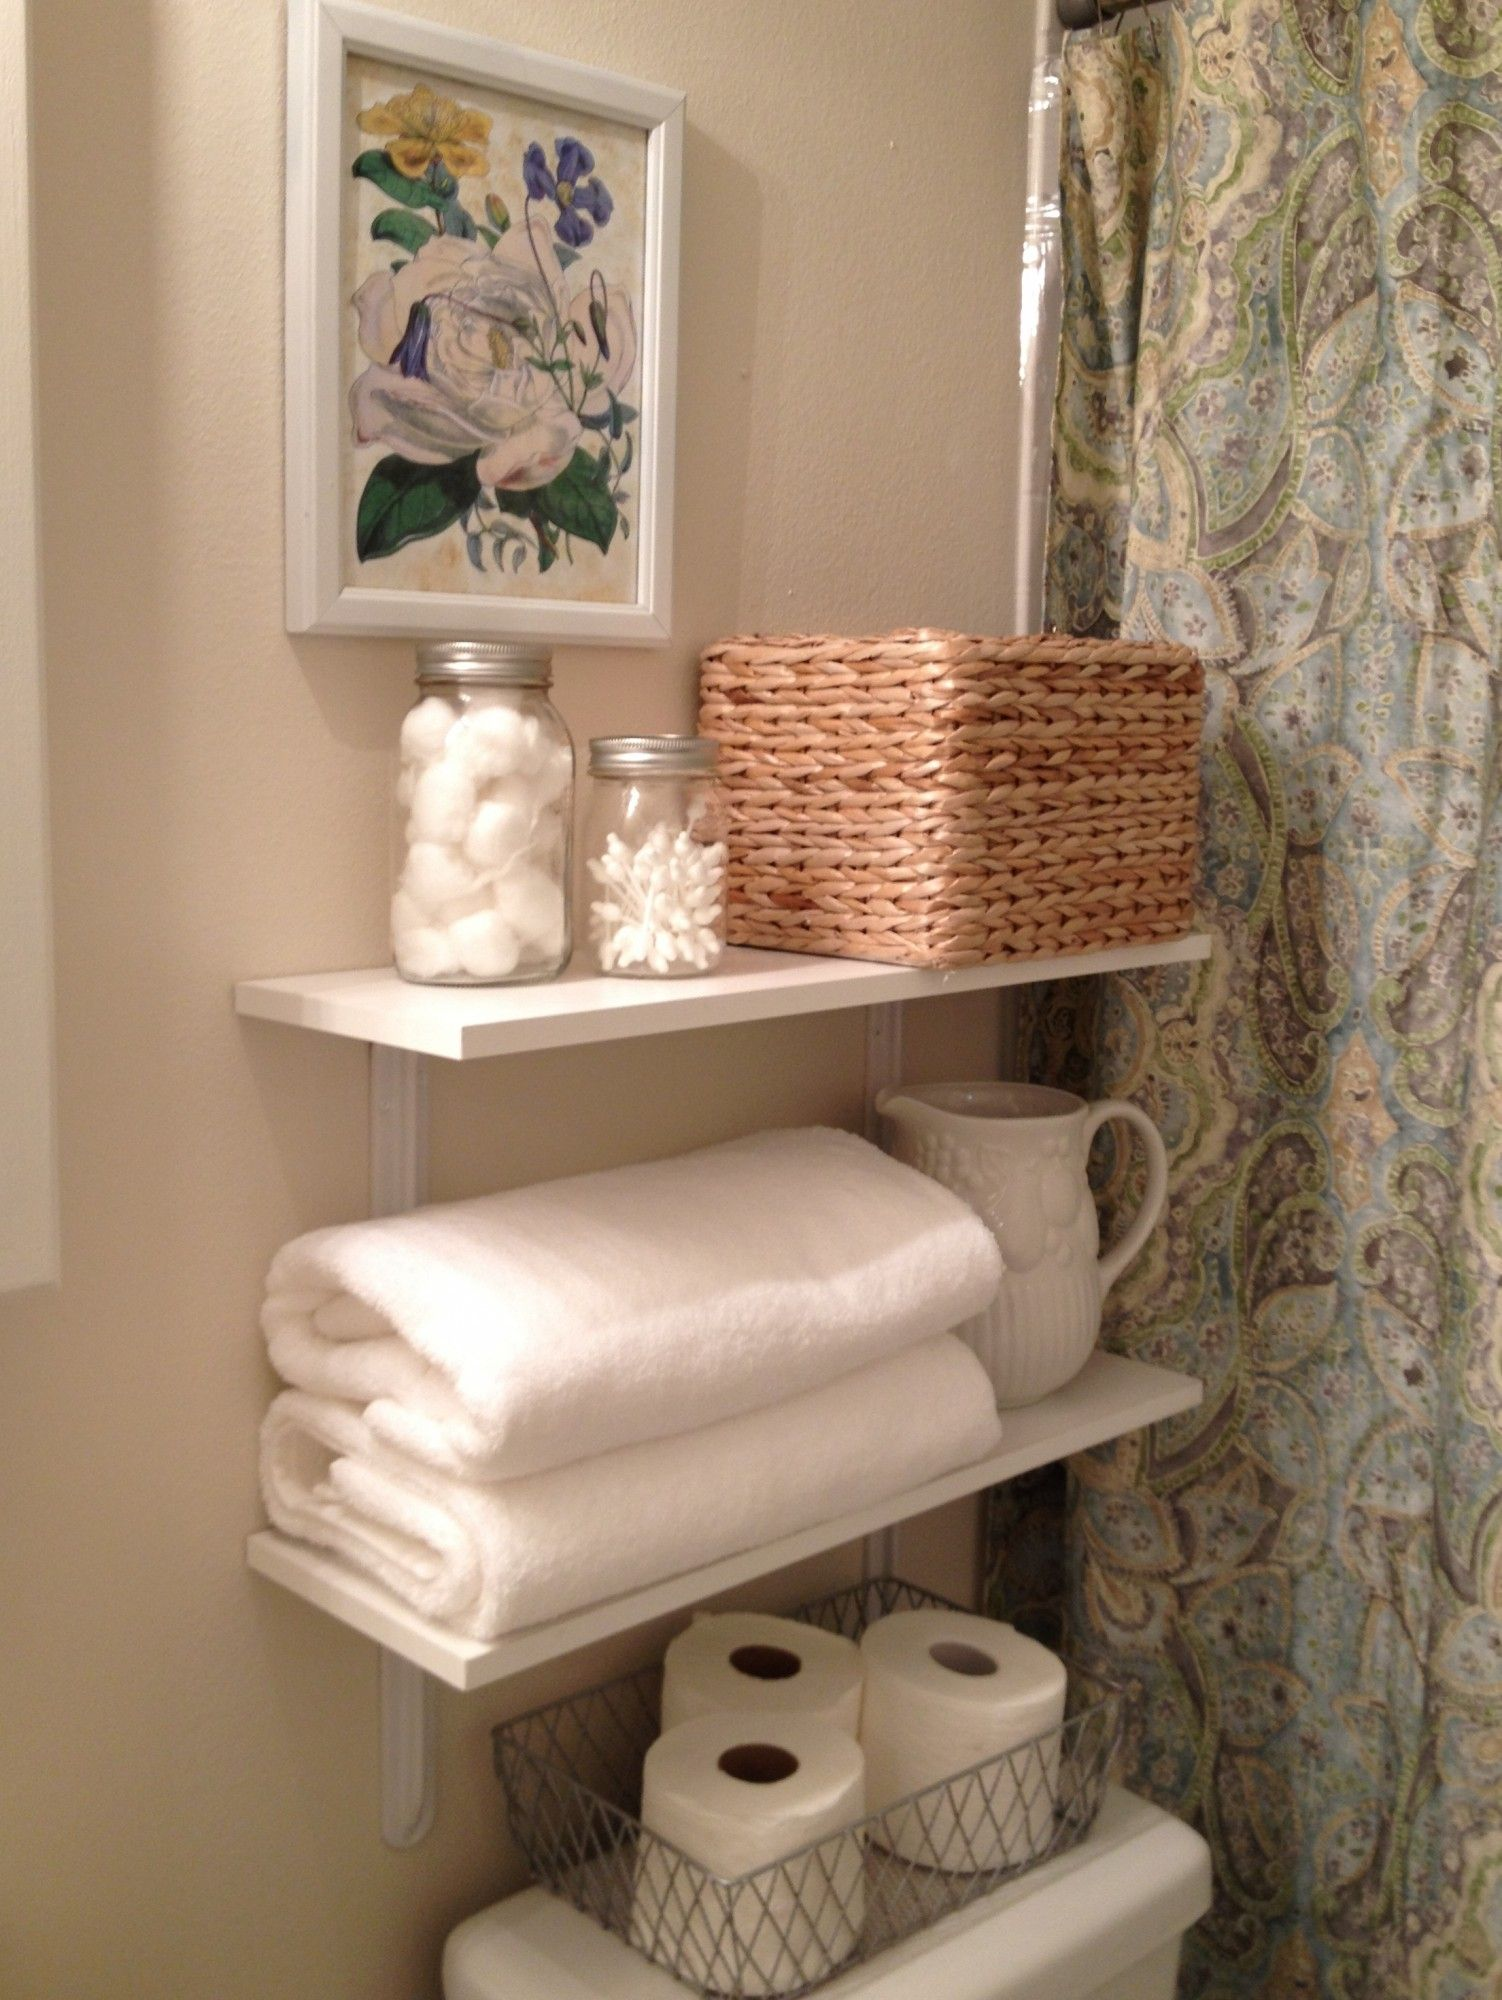 Towel Storage Ideas Small Bathroom Part - 43: Simplistic White Open Shelves Over Toilet Storage For Towel Place And  Tissue Storage Also Cool Grey Floral Shower Curtain In Cream Bathroom  Designs